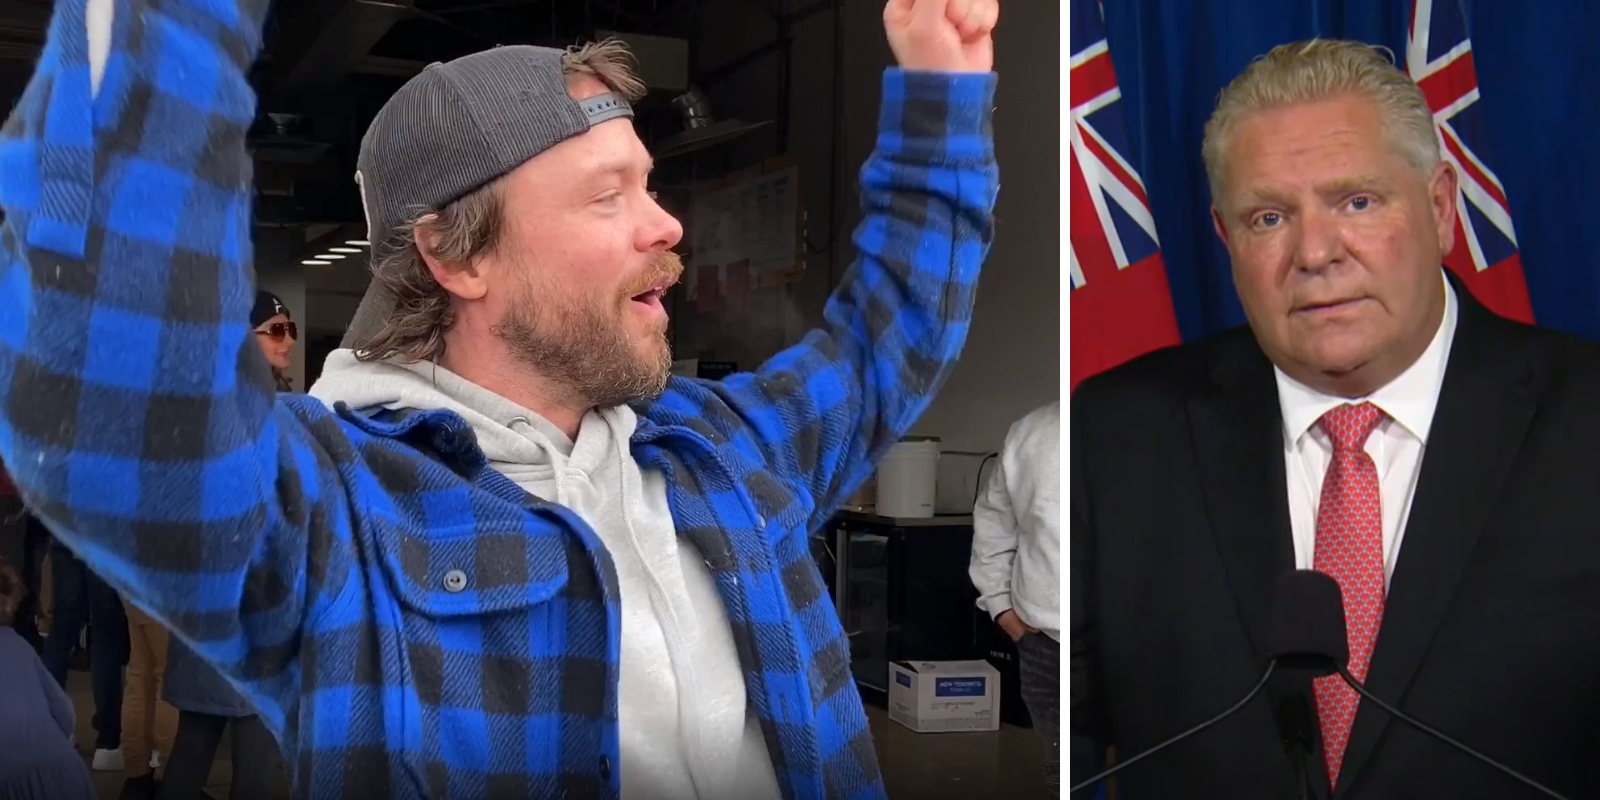 'Buddy, you need to shut down': Ford blasts Adamson BBQ owner for 'putting people's lives in jeopardy'